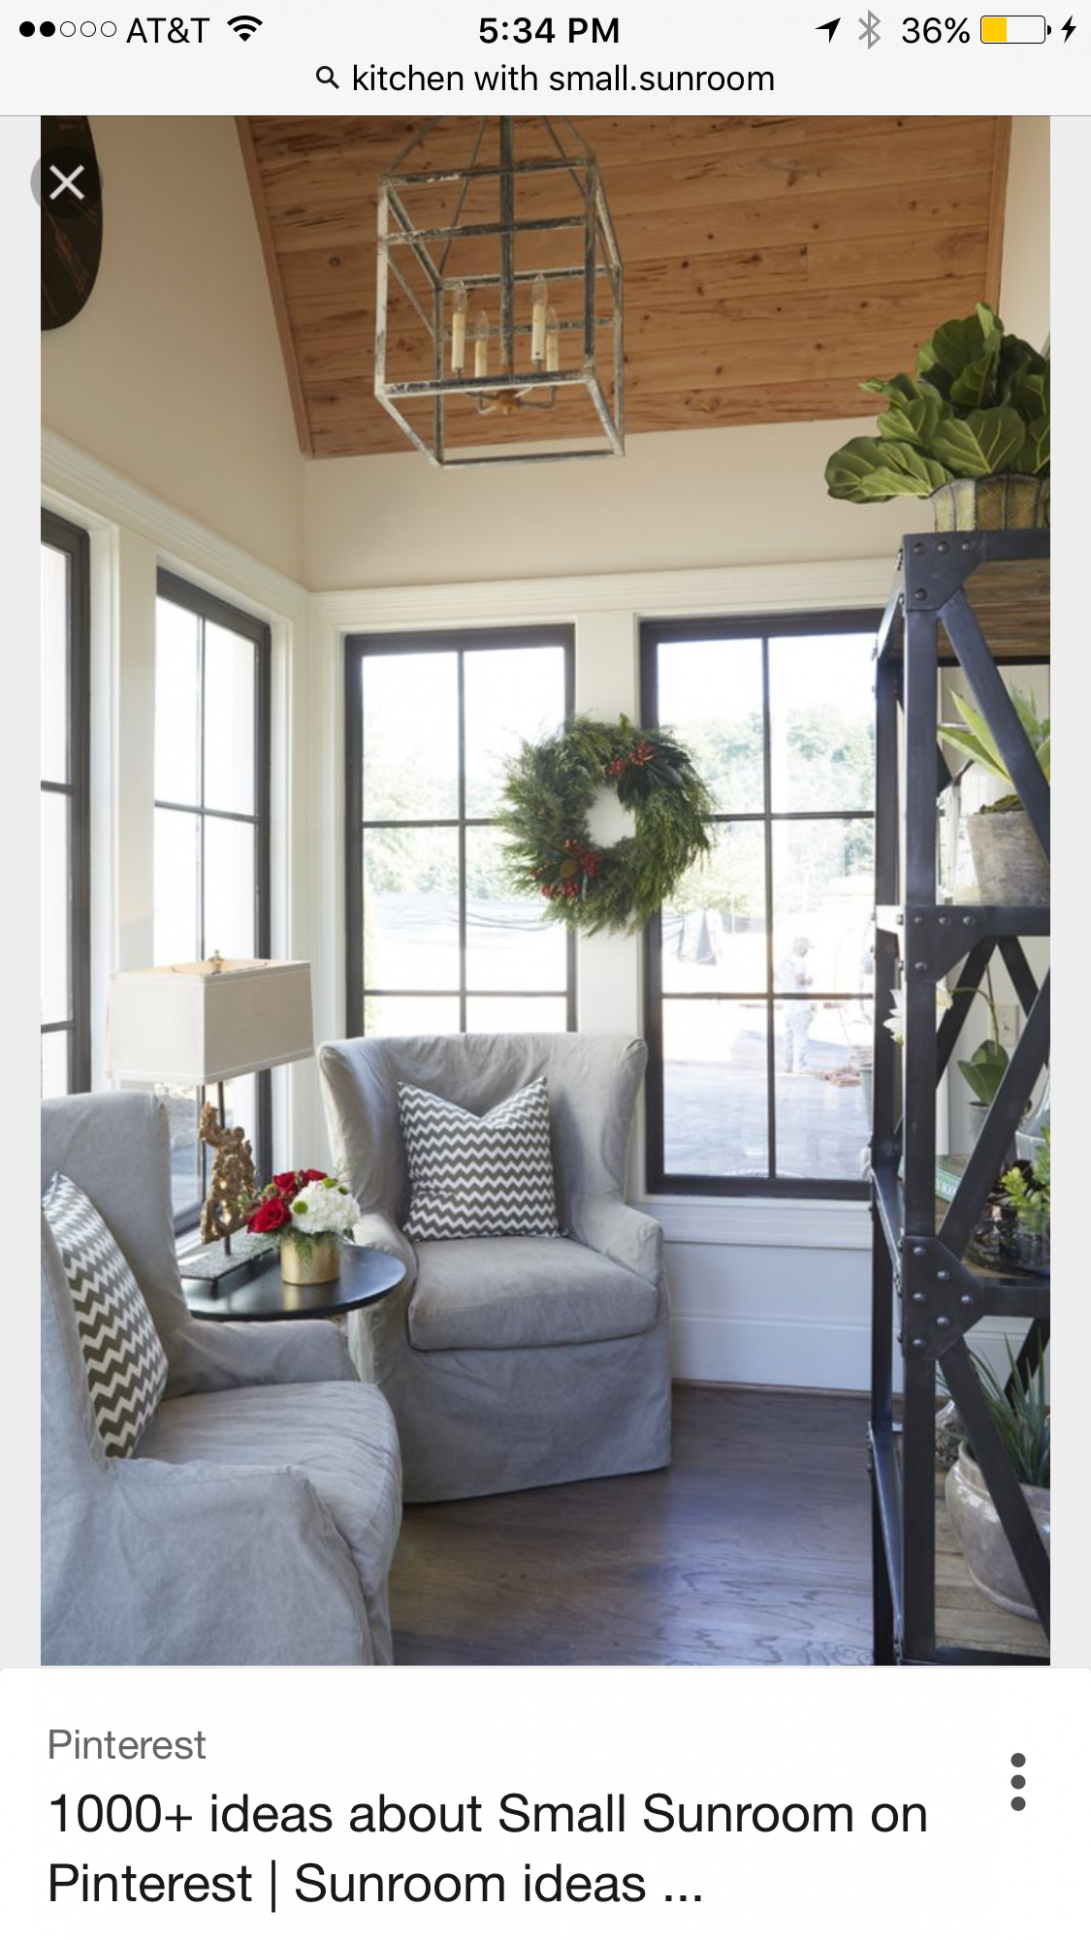 Like black windows | Small sunroom, Sunroom decorating, Sunroom ..